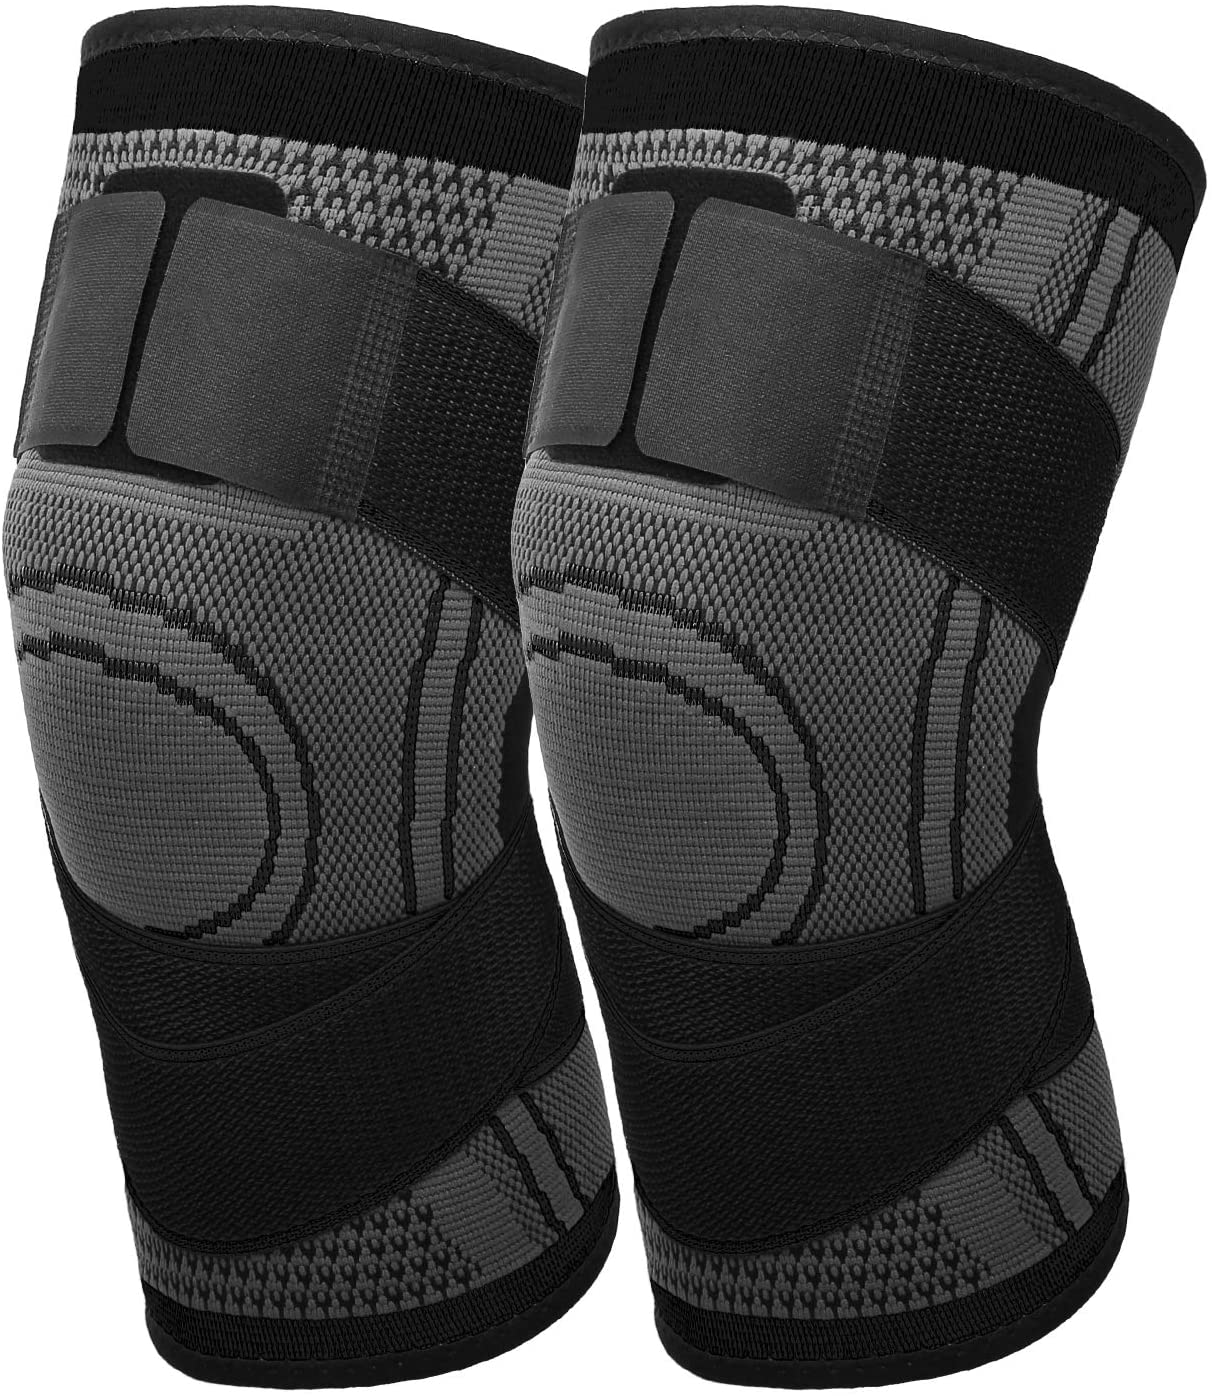 MoKo Knee Braces for Knee Pain [2 Pack], Women Men Adjustable Knee Compression Sleeve Stabilizers Support with Straps for Arthritis Meniscus Tear, Running, Sport, Weightlifting, Basketball, Volleyball